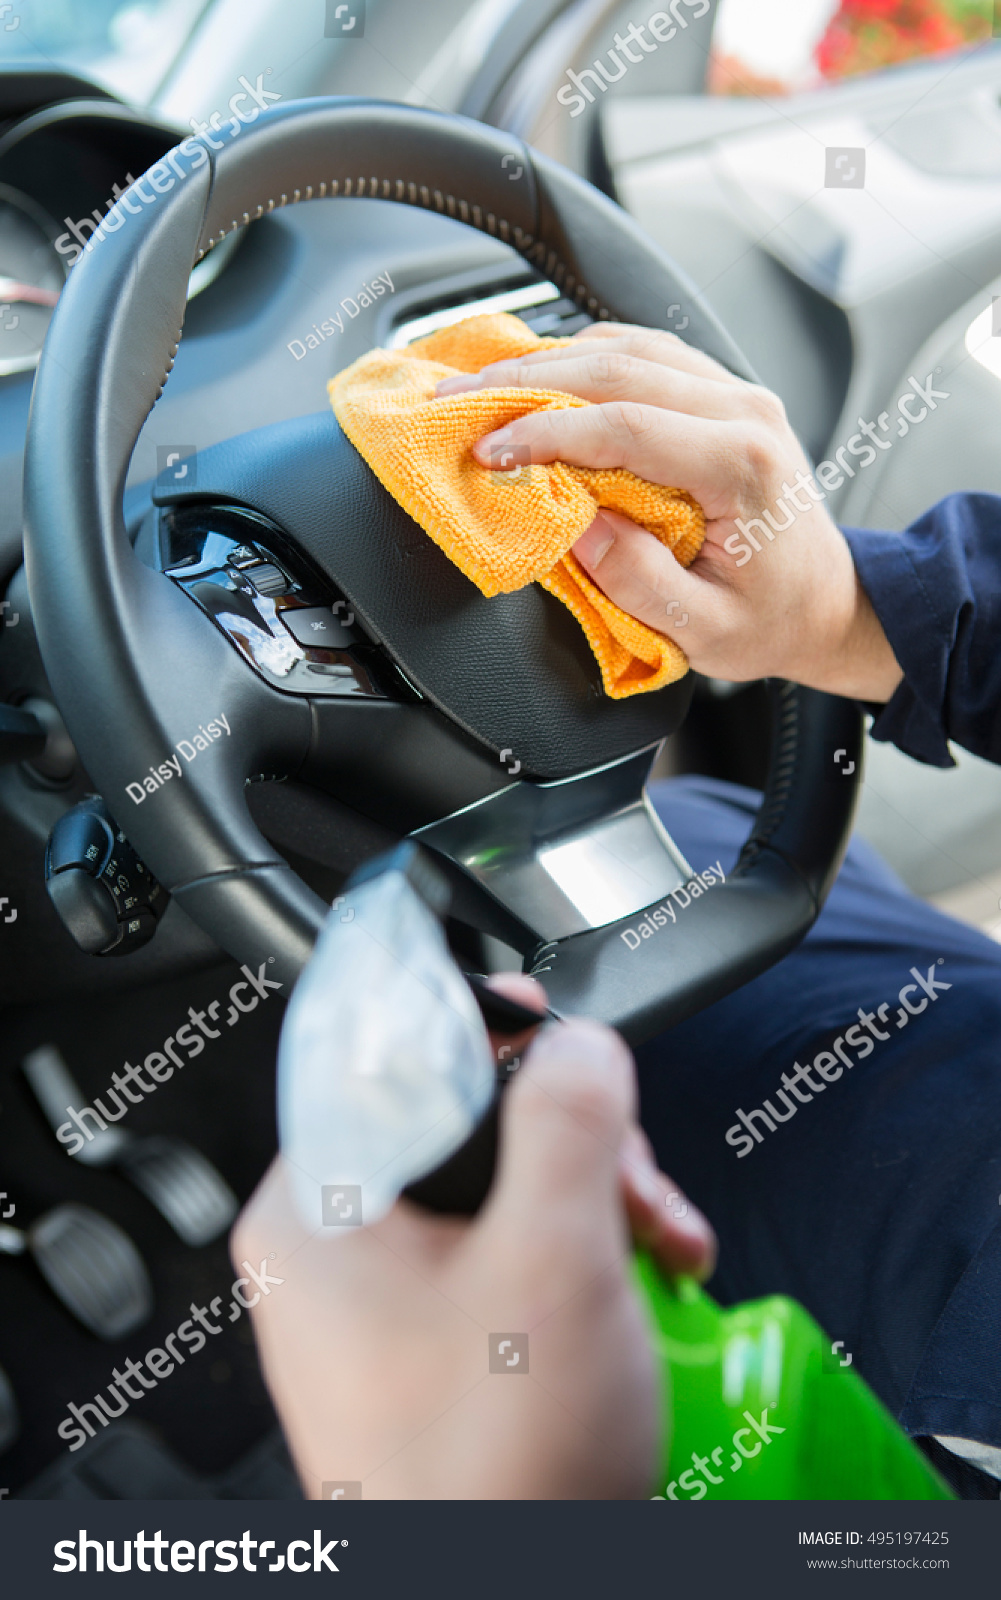 close of man cleaning interior of car stock photo 495197425 shutterstock. Black Bedroom Furniture Sets. Home Design Ideas